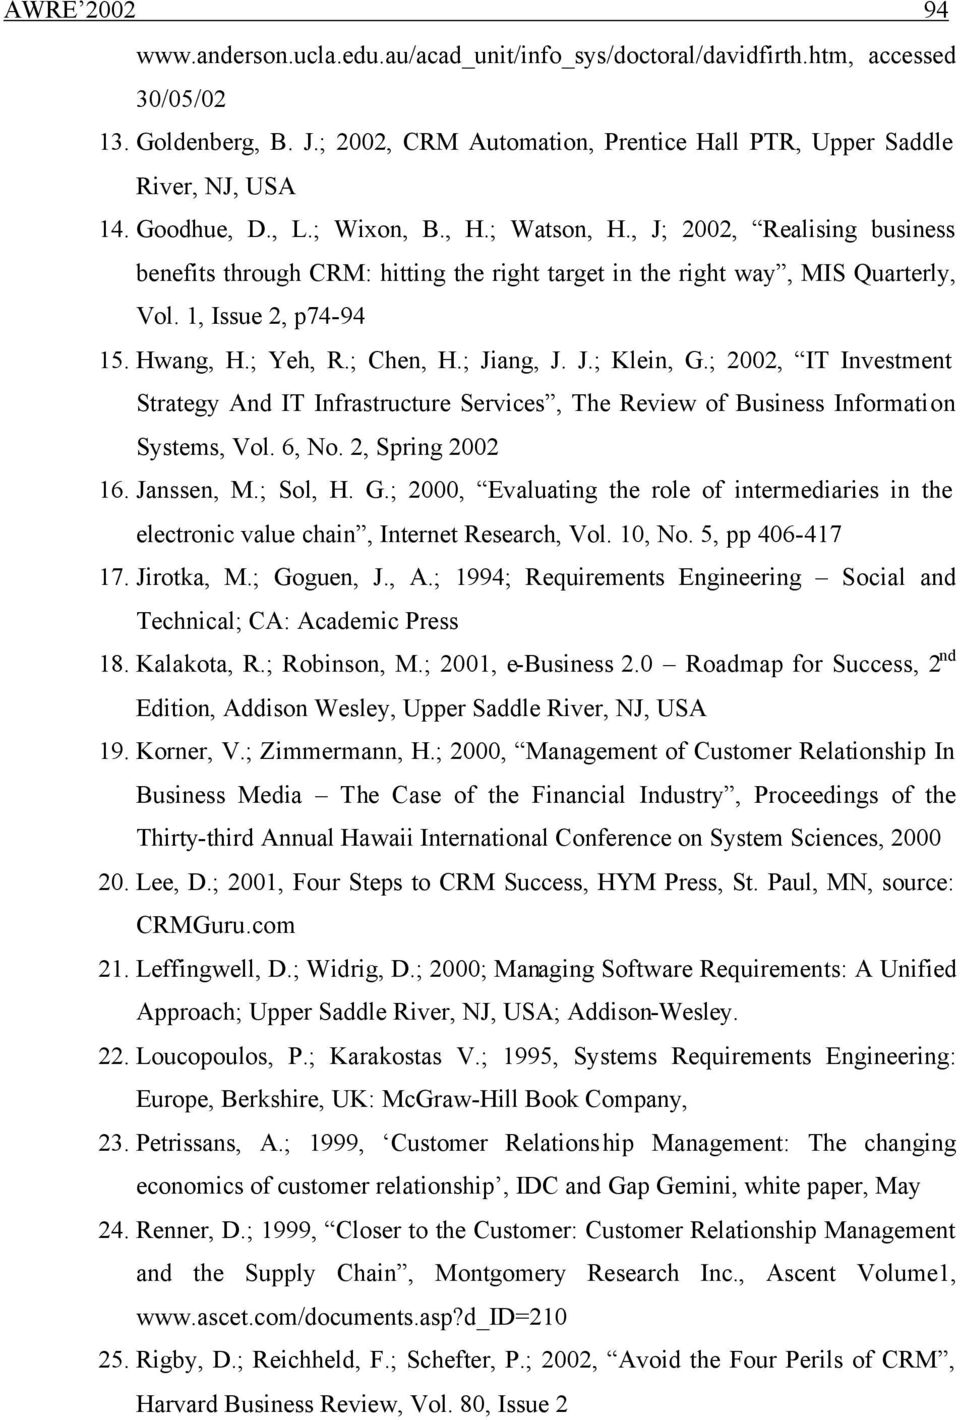 ; Chen, H.; Jiang, J. J.; Klein, G.; 2002, IT Investment Strategy And IT Infrastructure Services, The Review of Business Information Systems, Vol. 6, No. 2, Spring 2002 16. Janssen, M.; Sol, H. G.; 2000, Evaluating the role of intermediaries in the electronic value chain, Internet Research, Vol.